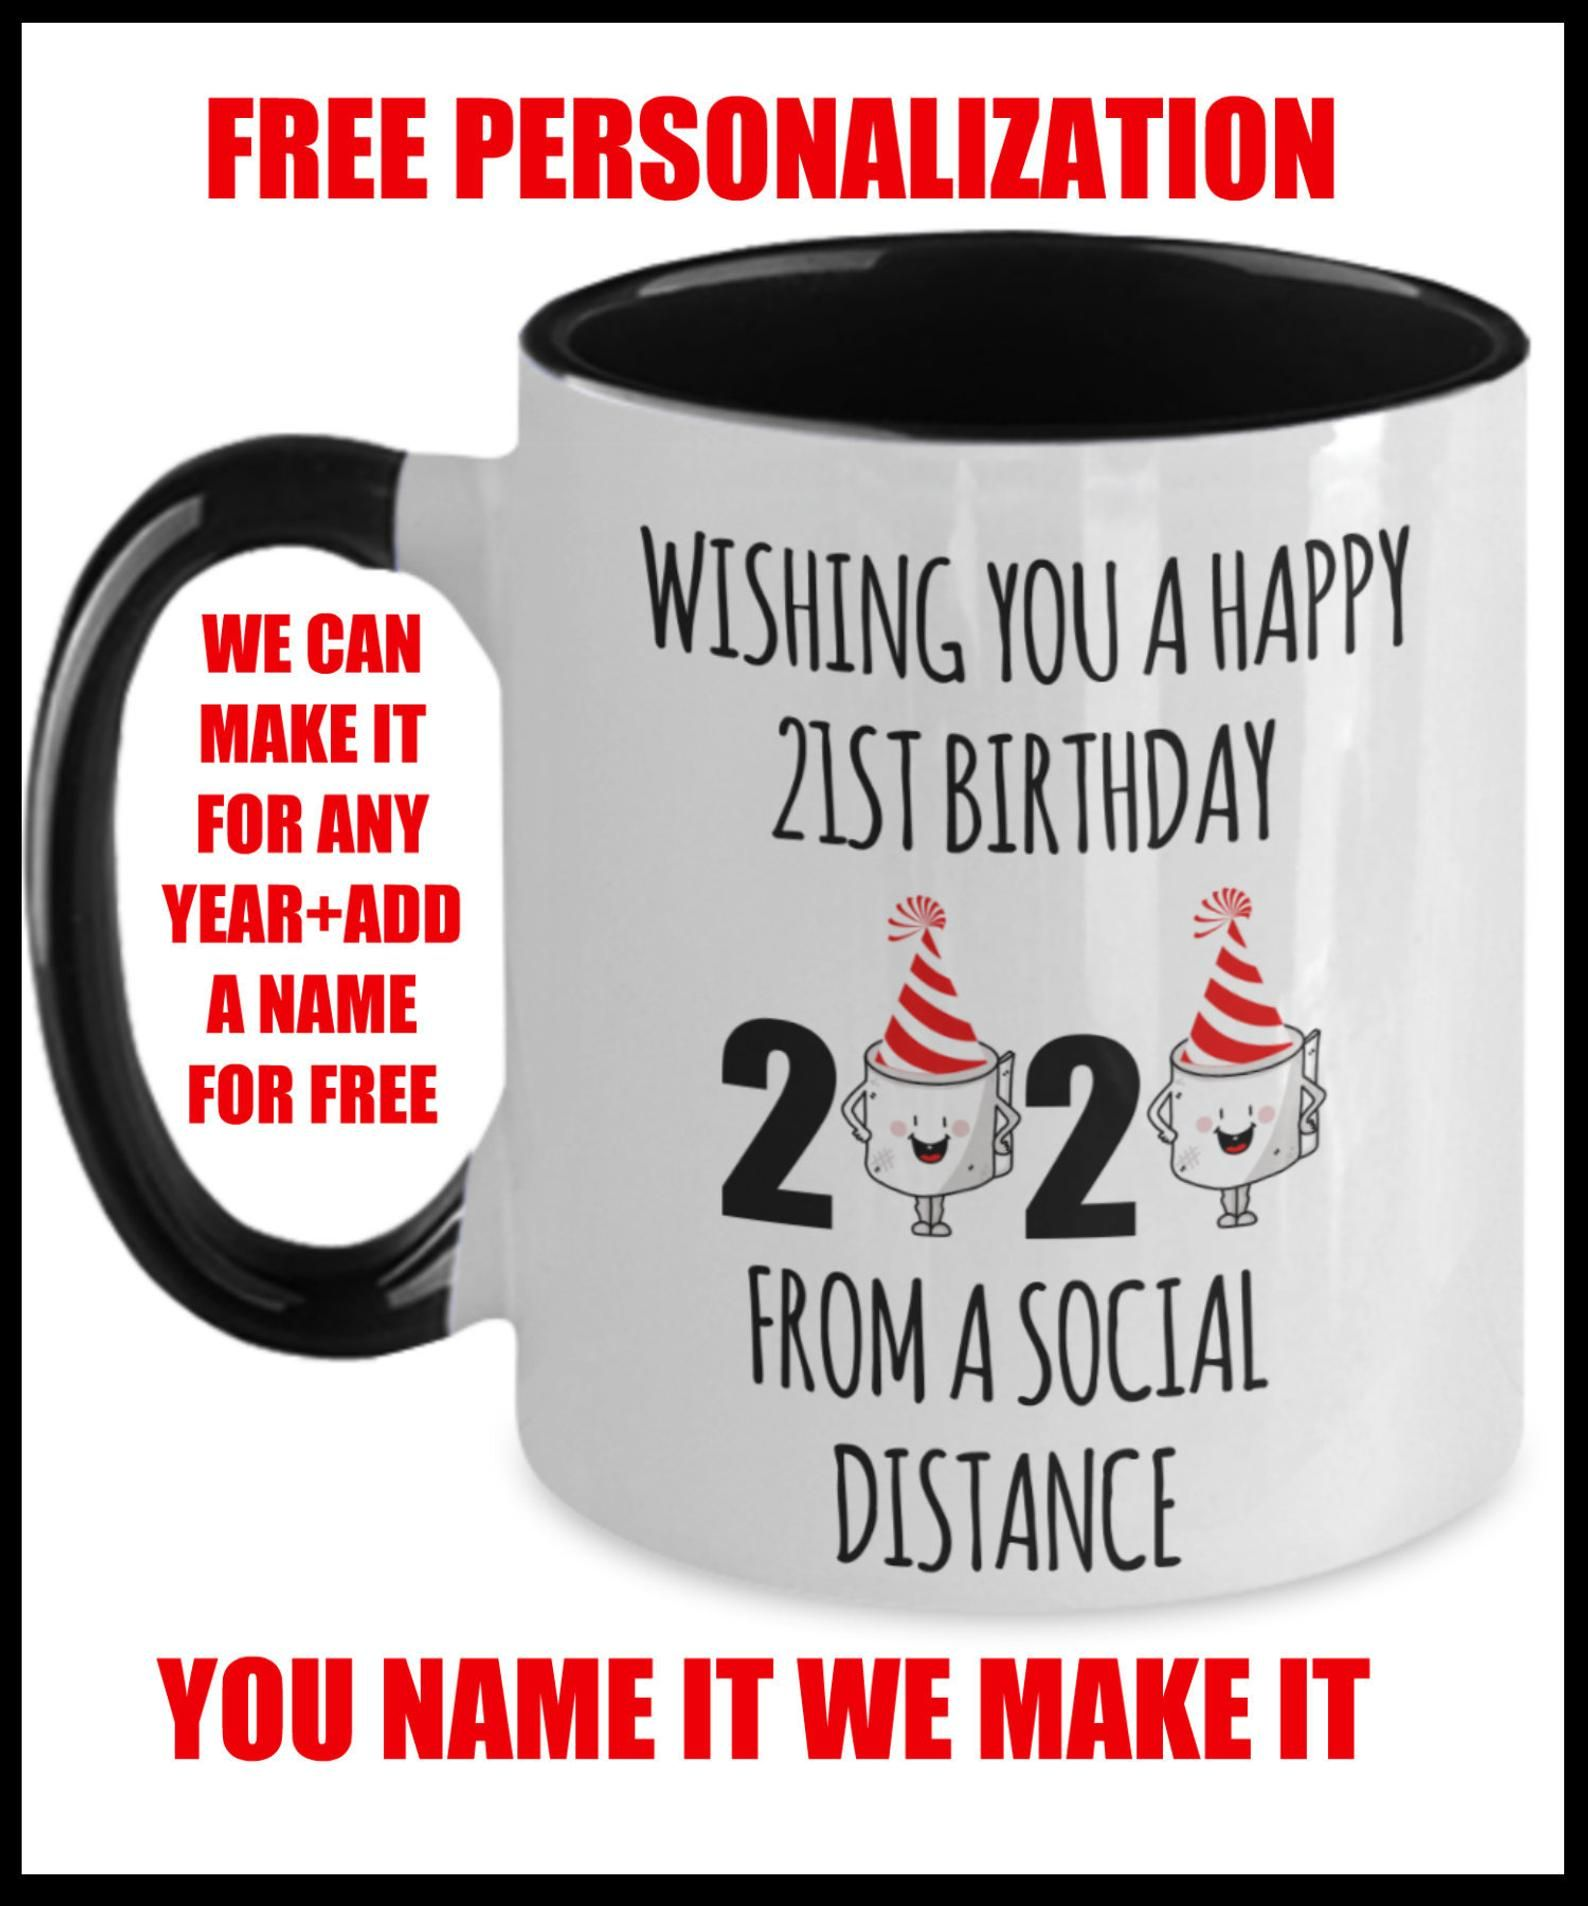 Happy 21st Birthday Social Distance Quarantine Personalized Gift Mug, 21st Birthday Ideas For Daughter Sister Best Friend Son, Coffee Cup